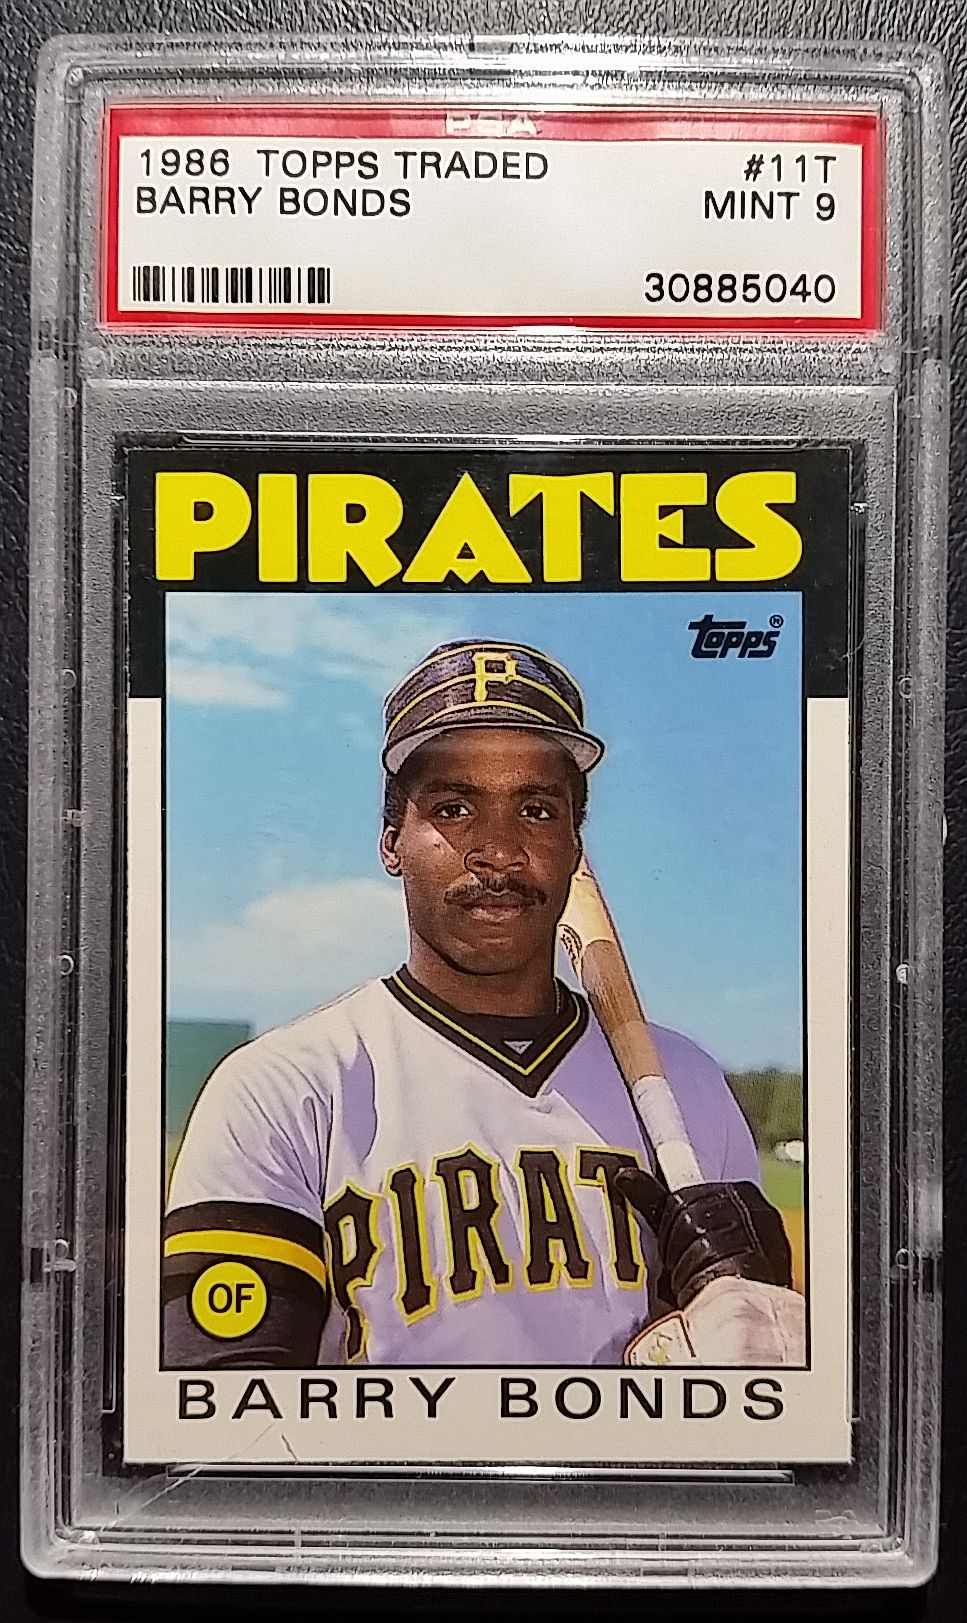 1986 topps traded baseball barry bonds rookie card graded